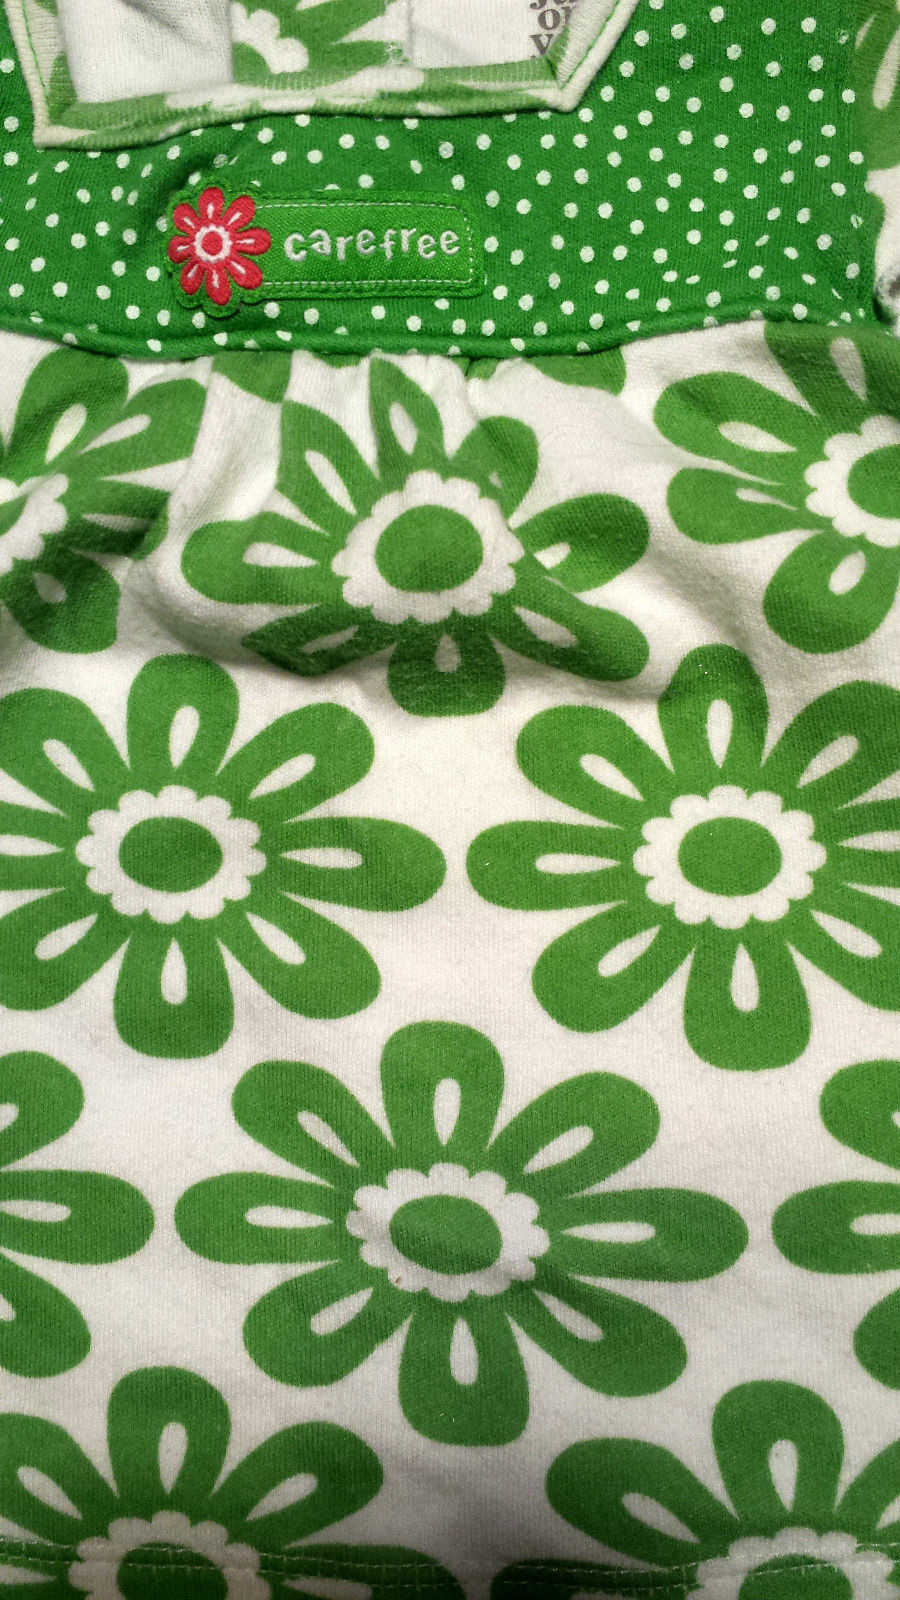 Girl's Size 3 M 0-3 Months 2 Pc Carter's Green/ White Floral Carefree Dress & DC